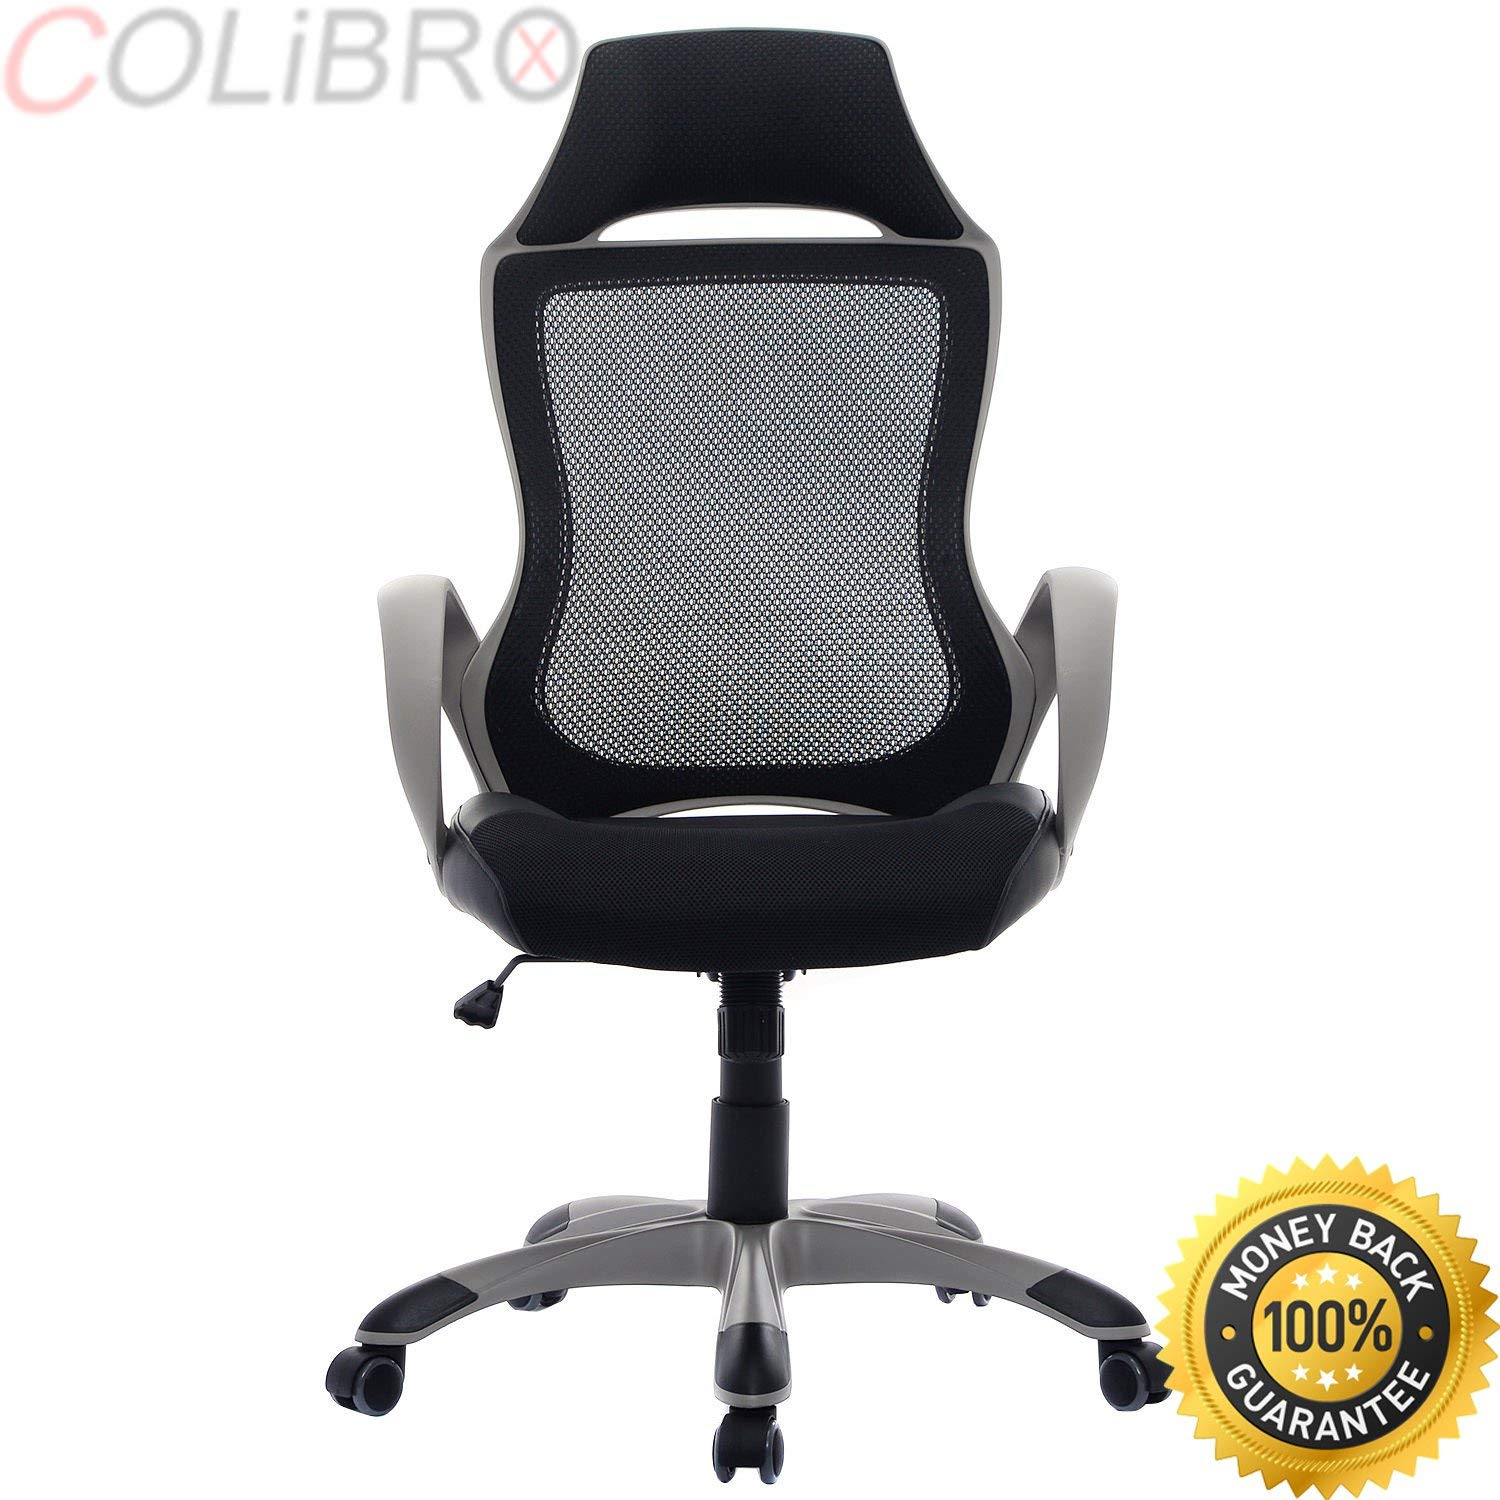 ergonomic office chair amazon bedroom hanging with stand cheap best find get quotations colibrox new modern executive mesh high back computer desk task